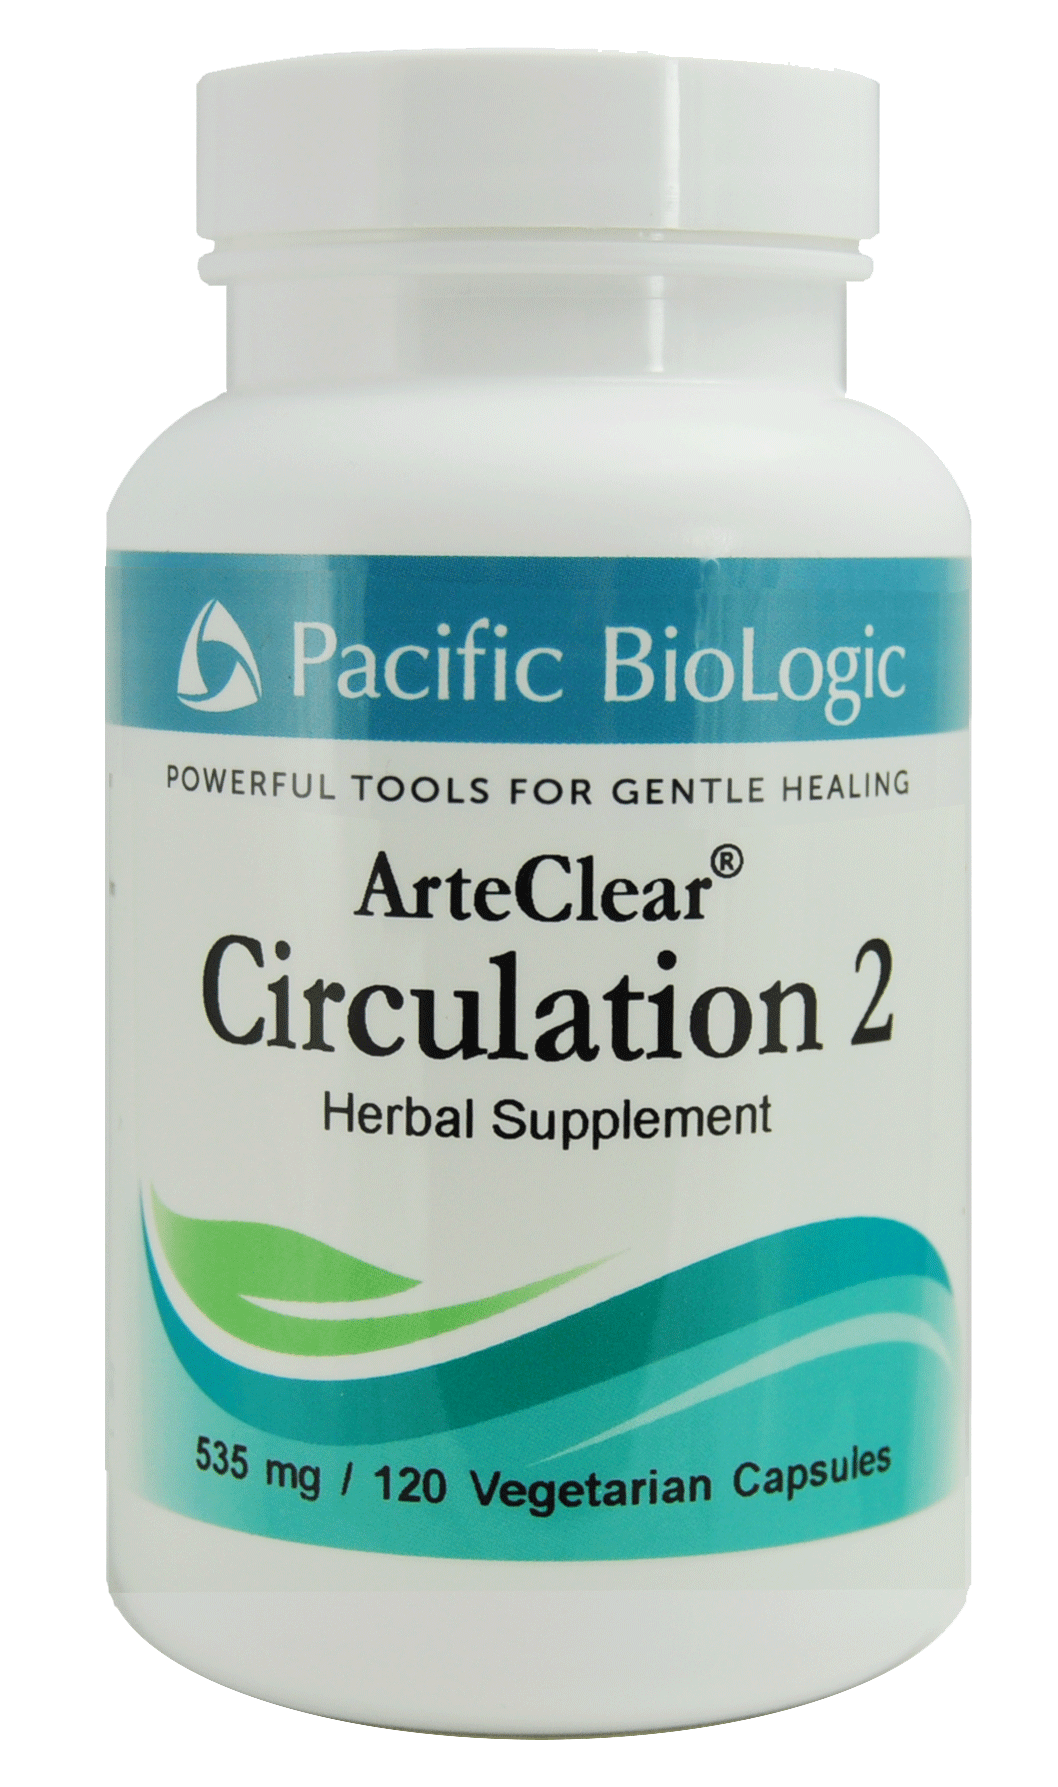 ArteClear: Circulation 2